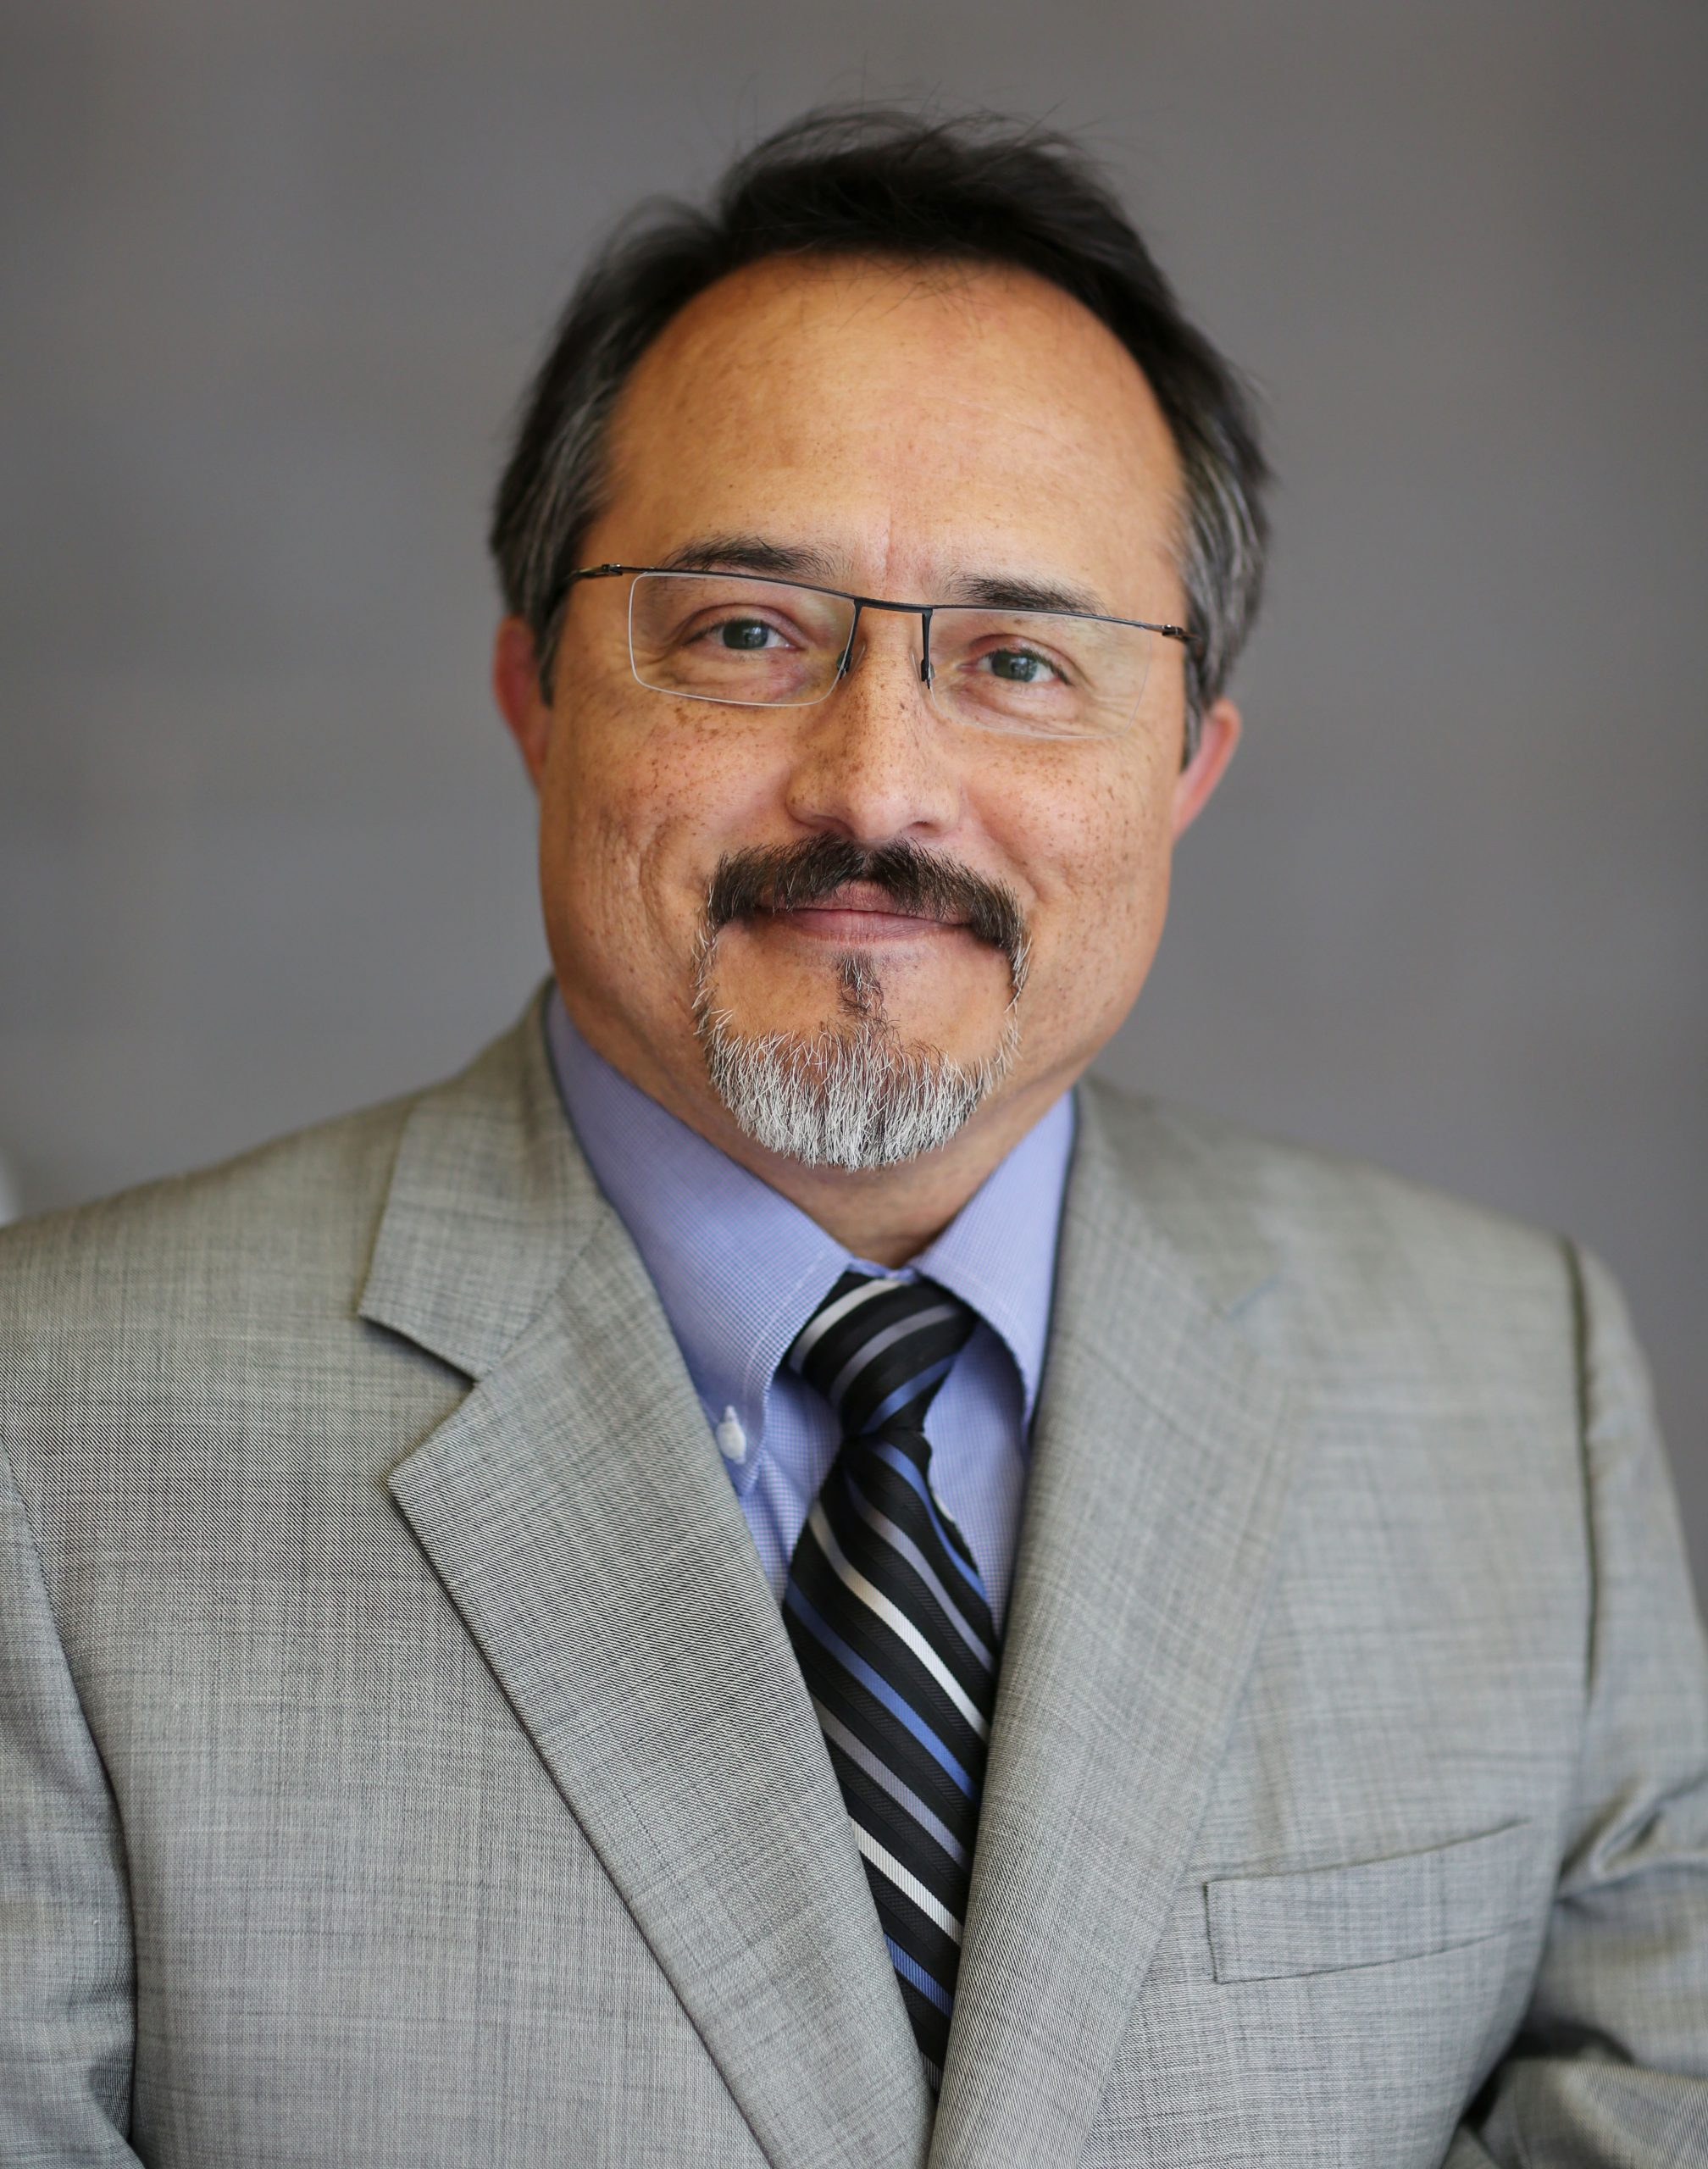 Headshot of Octavio Villalpando